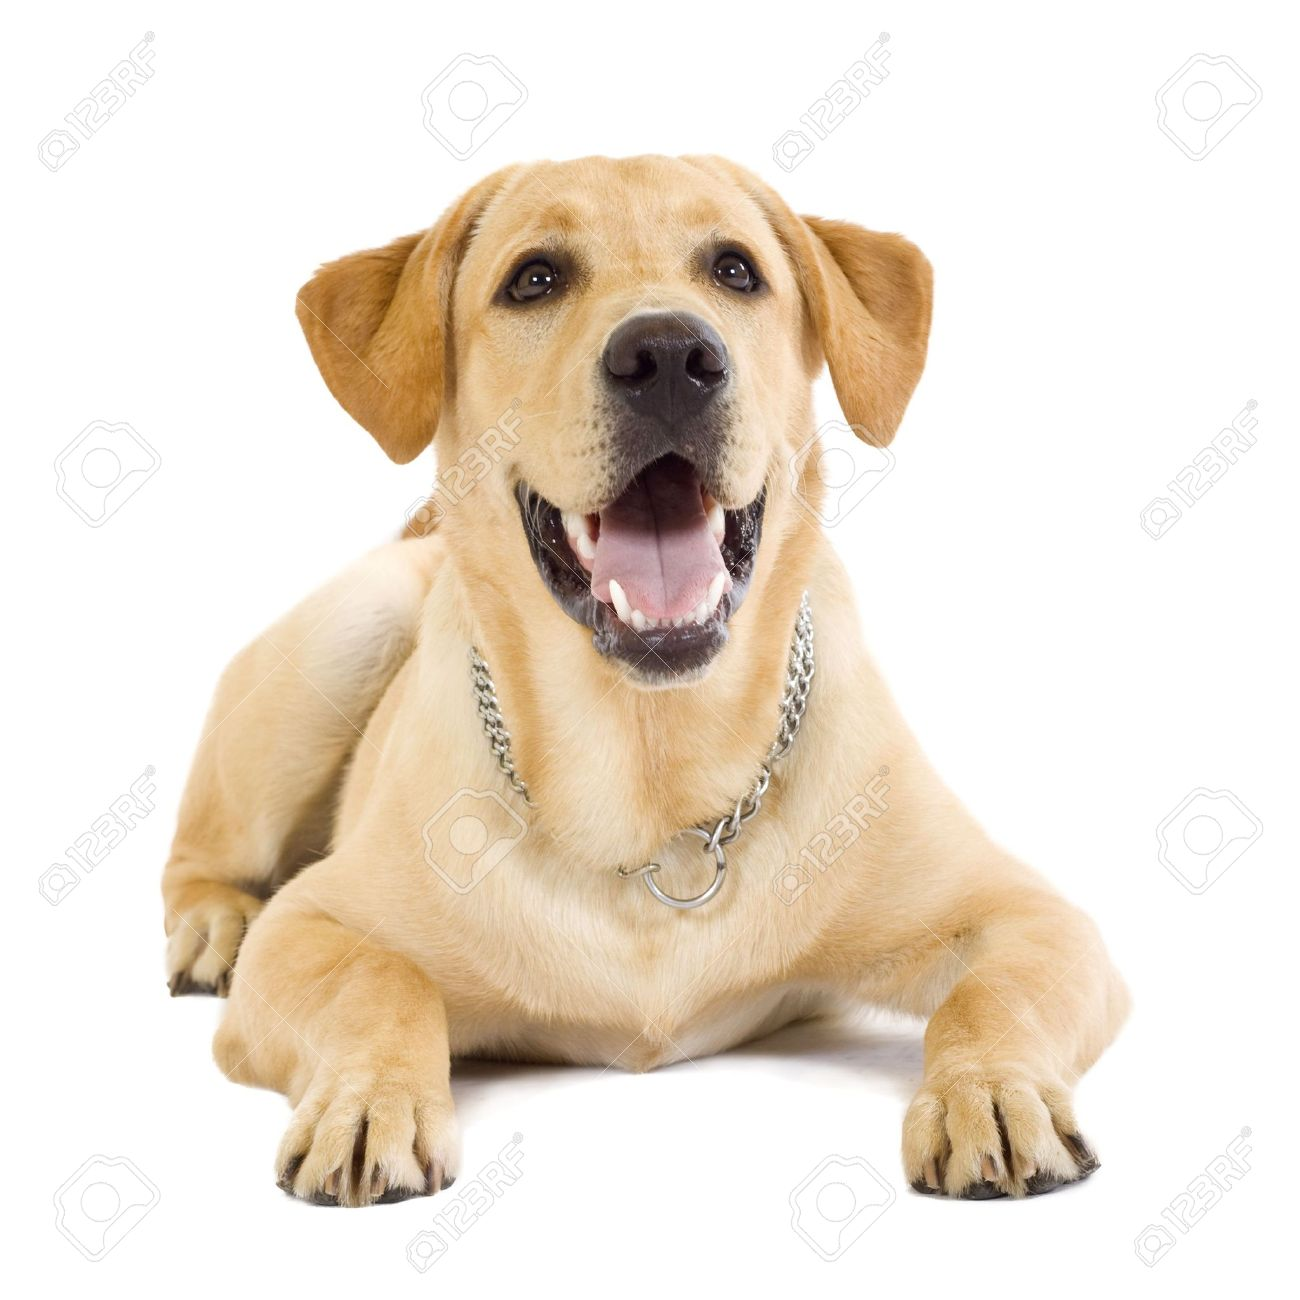 seated Puppy Labrador retriever cream in front of white background Stock Photo - 5951099